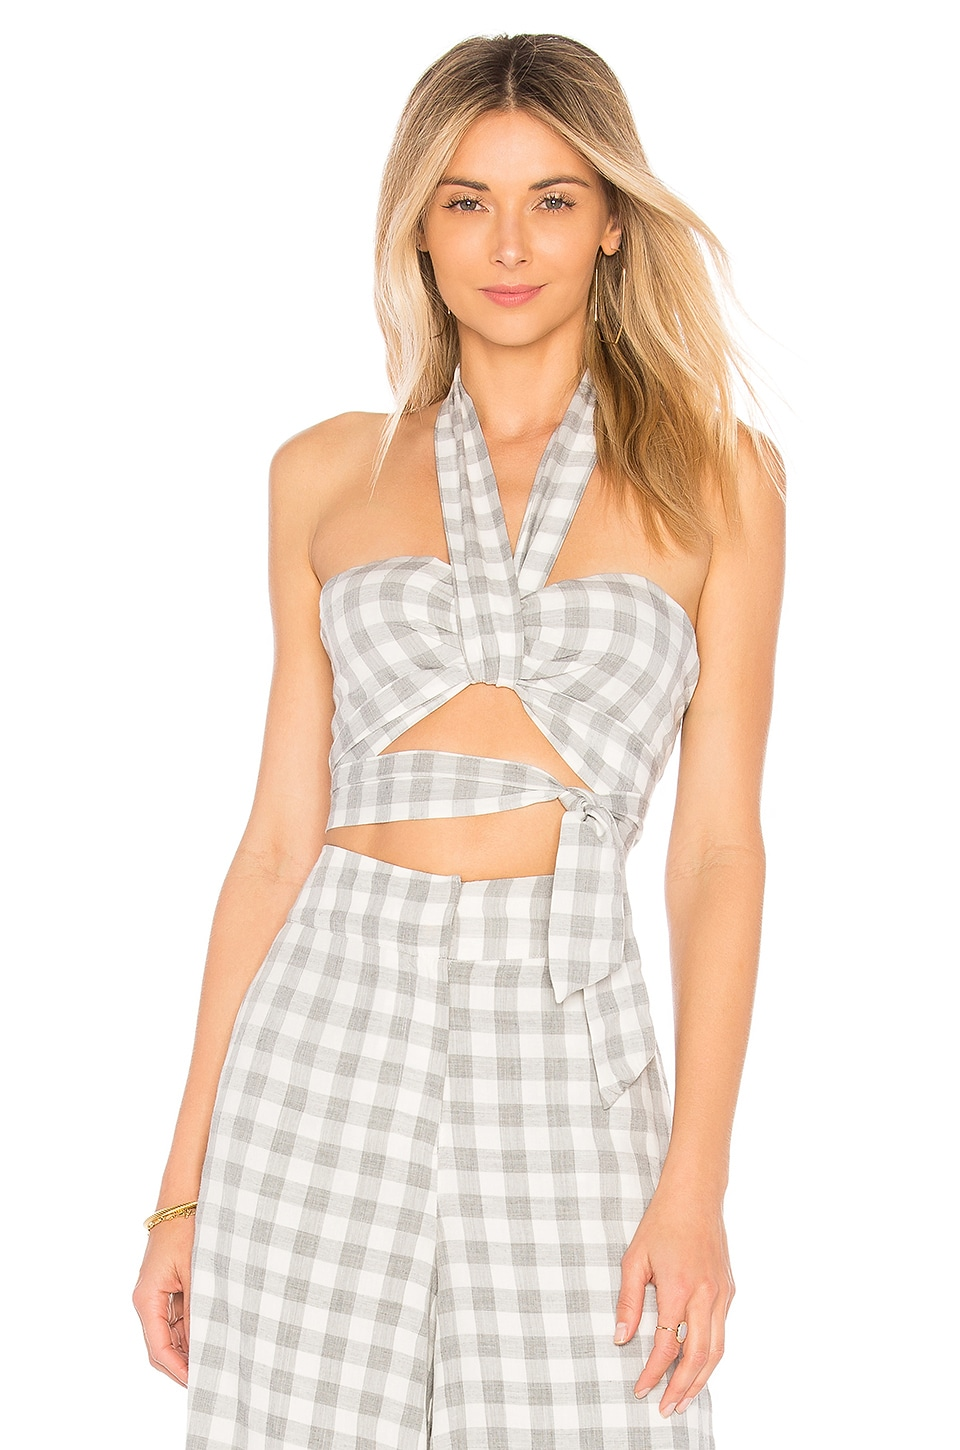 House of Harlow 1960 x REVOLVE Tammy Top in Stratus